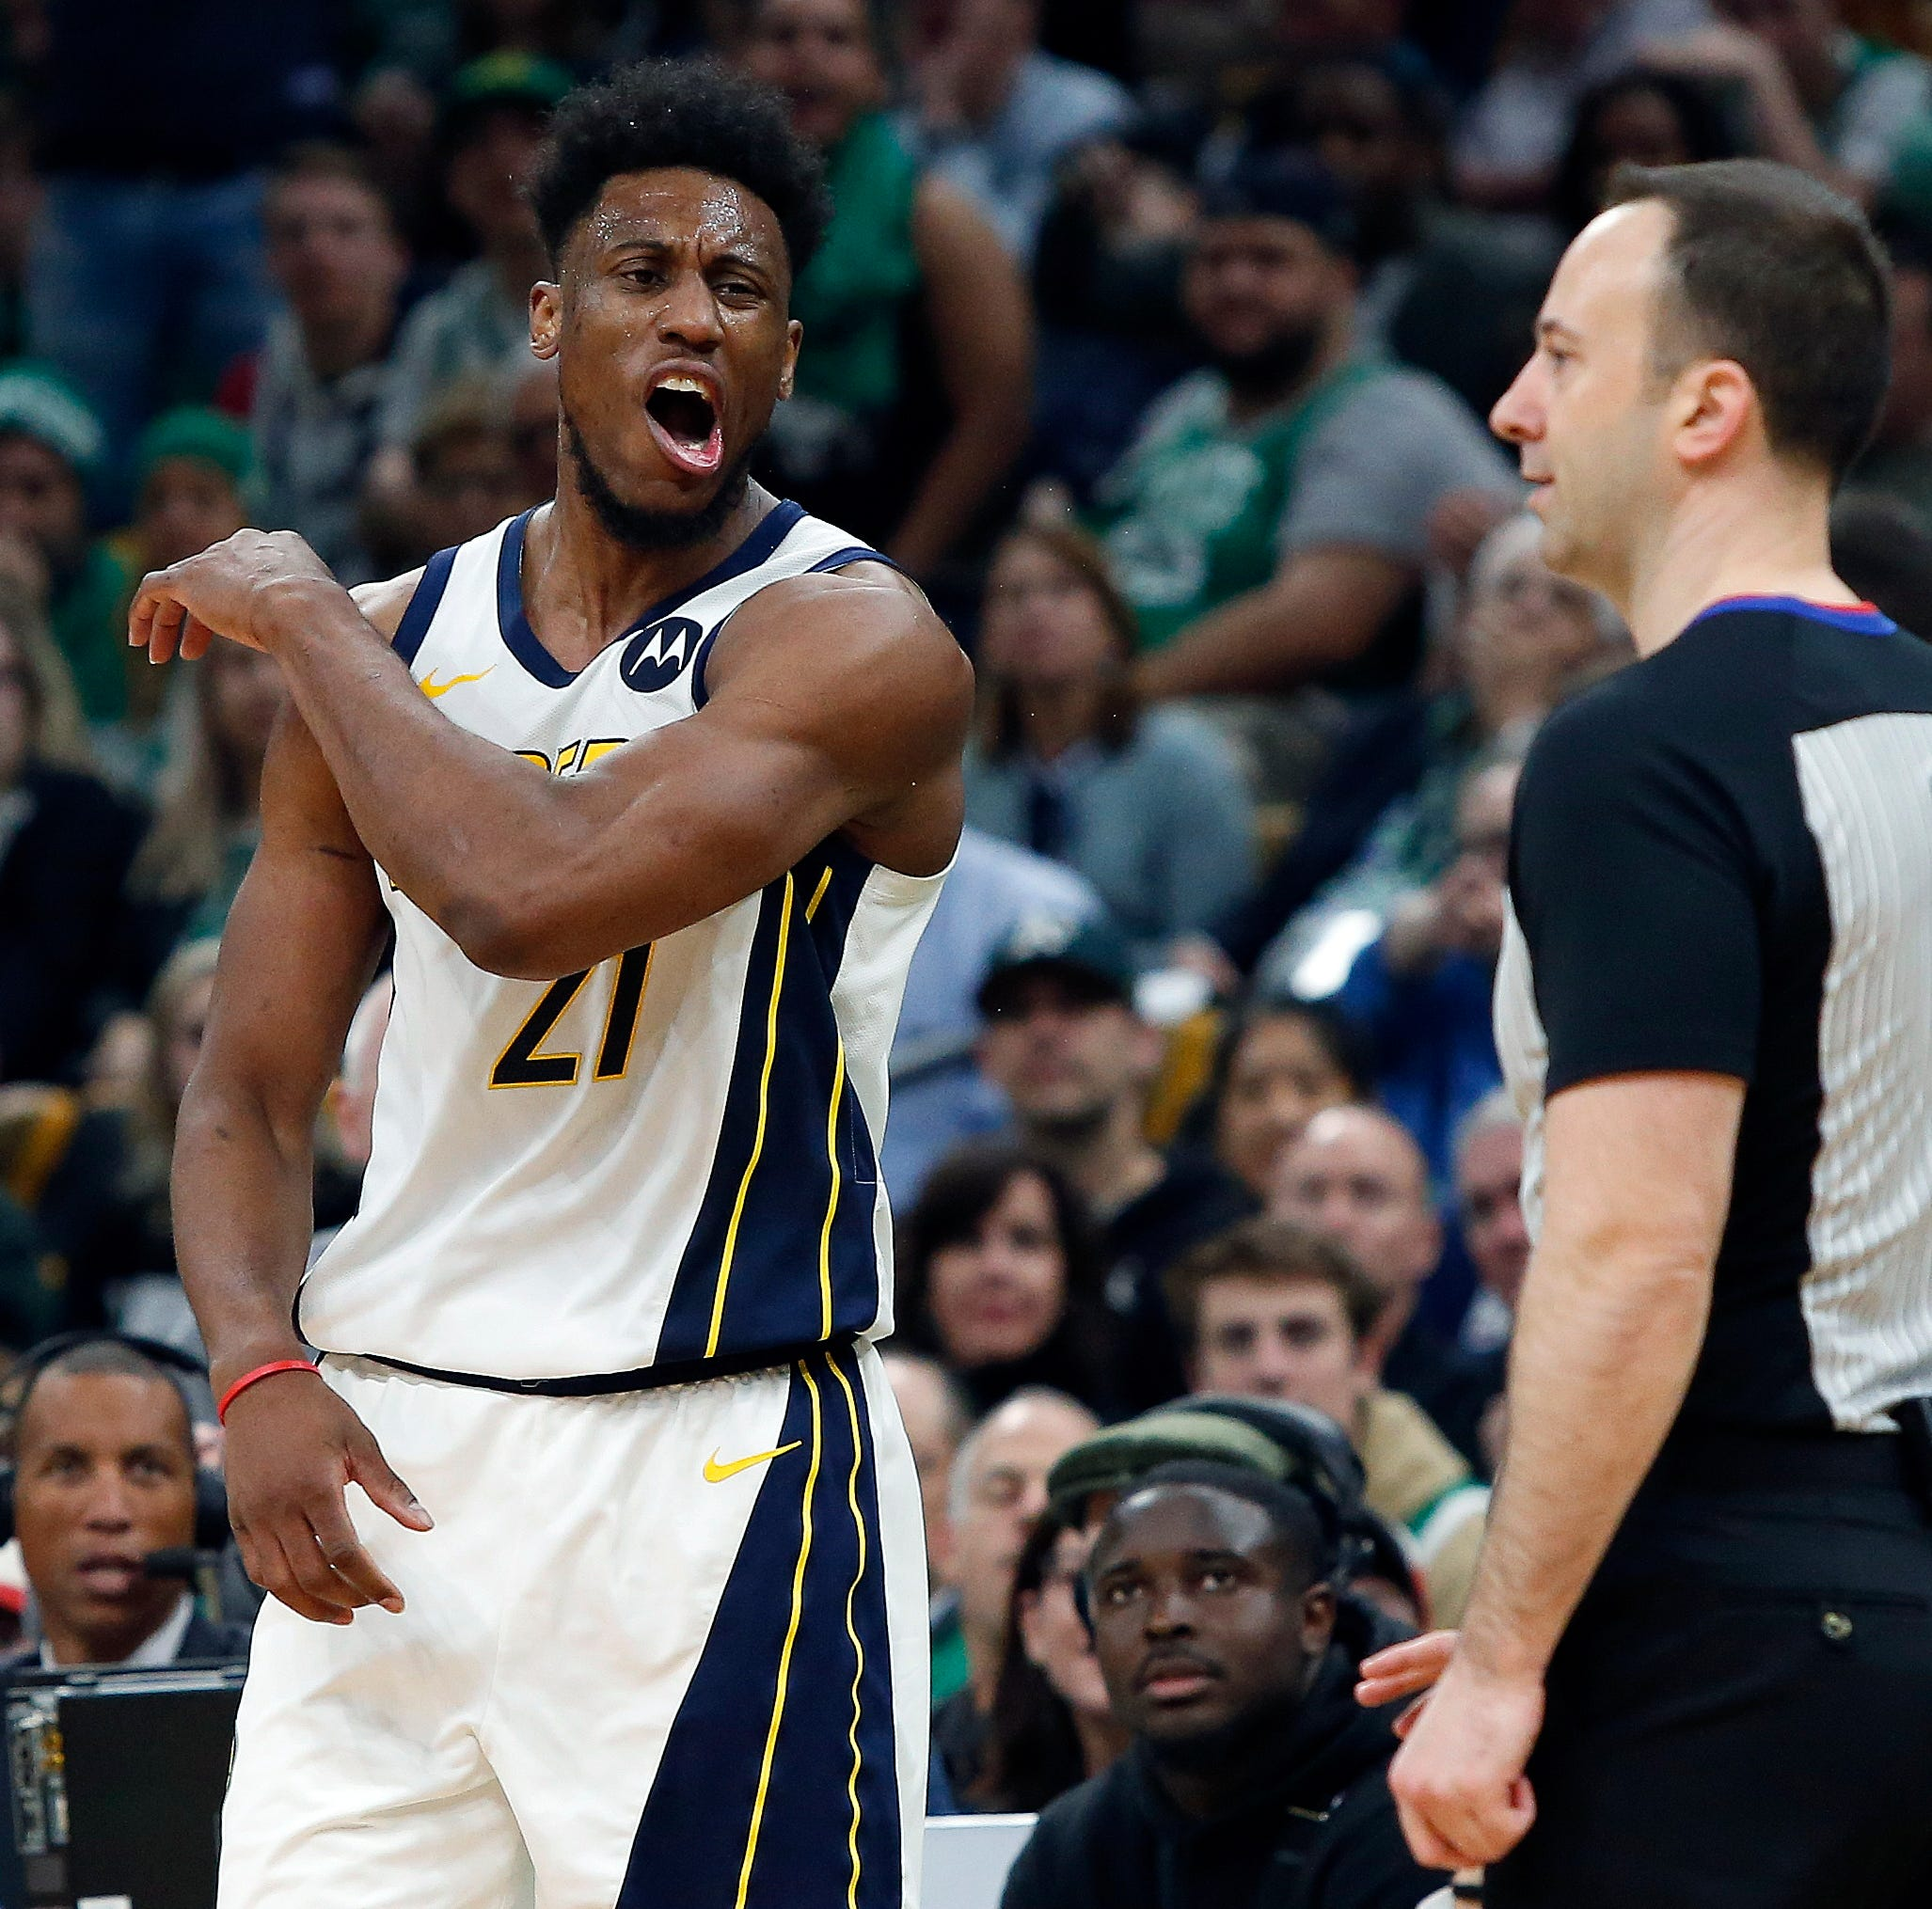 While Pacers' defense up to challenge, more offense required to contend with Celtics